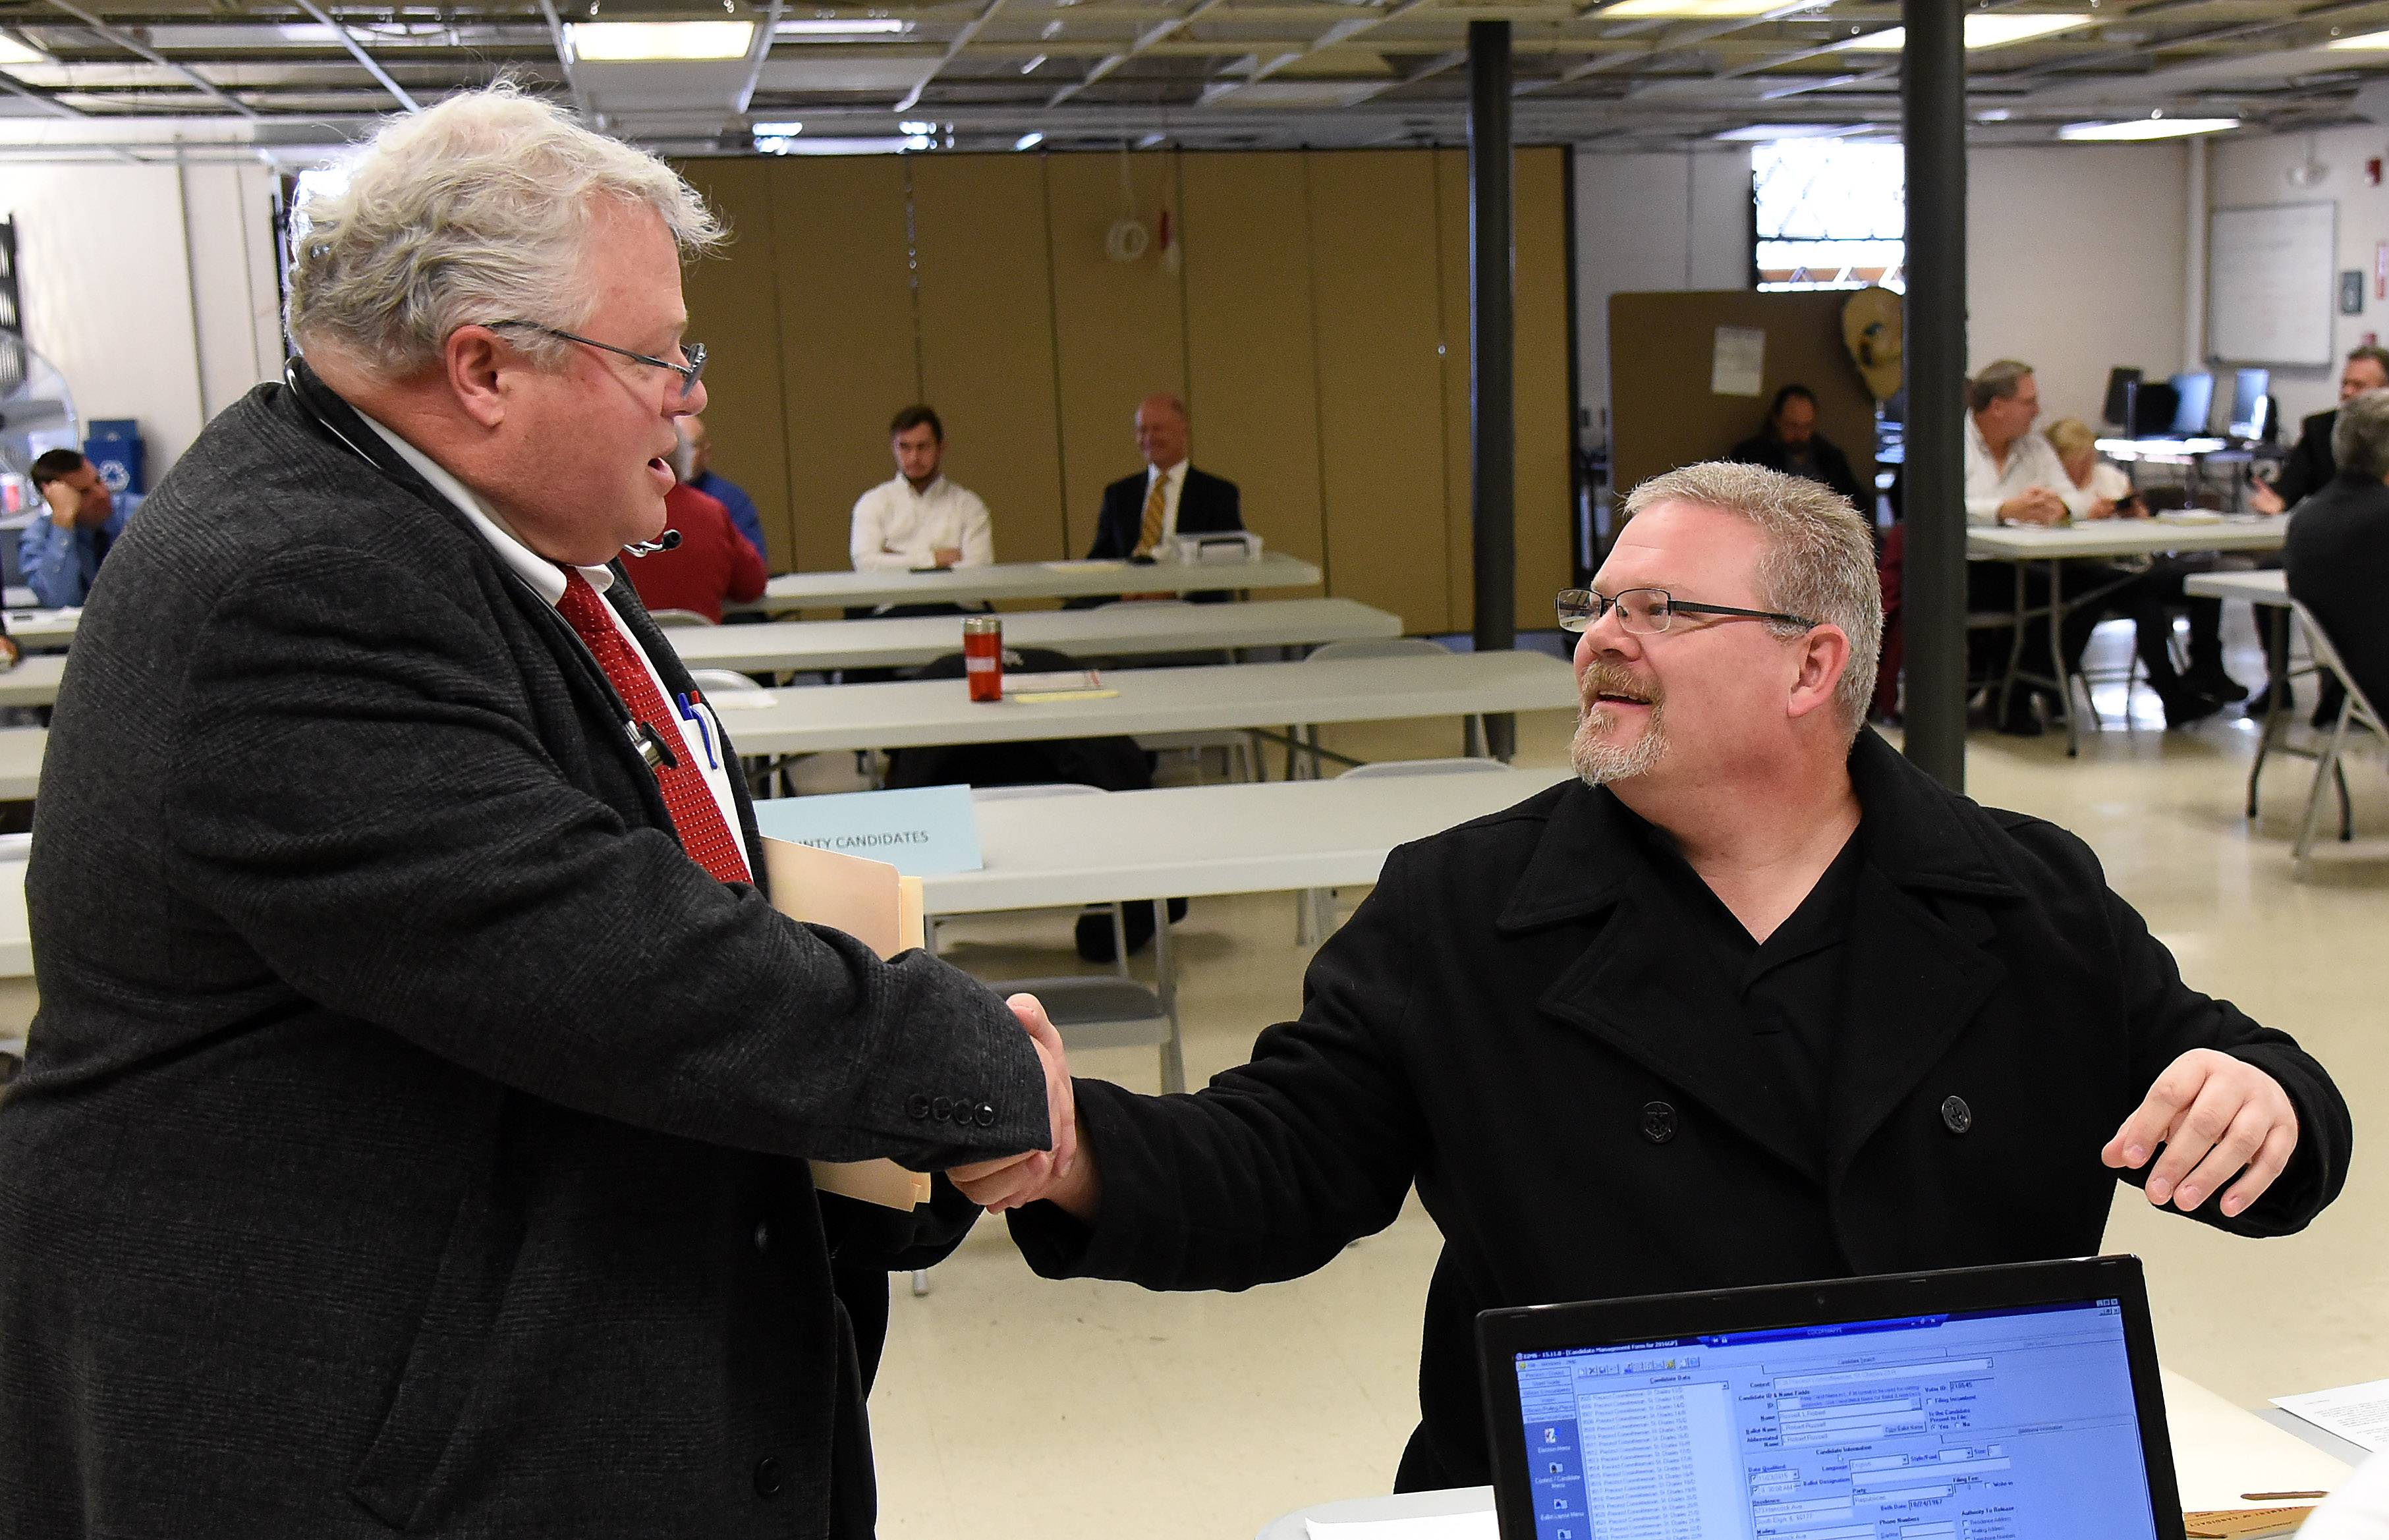 They have a contentious history, but on Monday Republican primary challenger Dr. Bob Tiballi, left, and Kane County Coroner Rob Russell shake hands on the first day of candidate filing for the March primary.